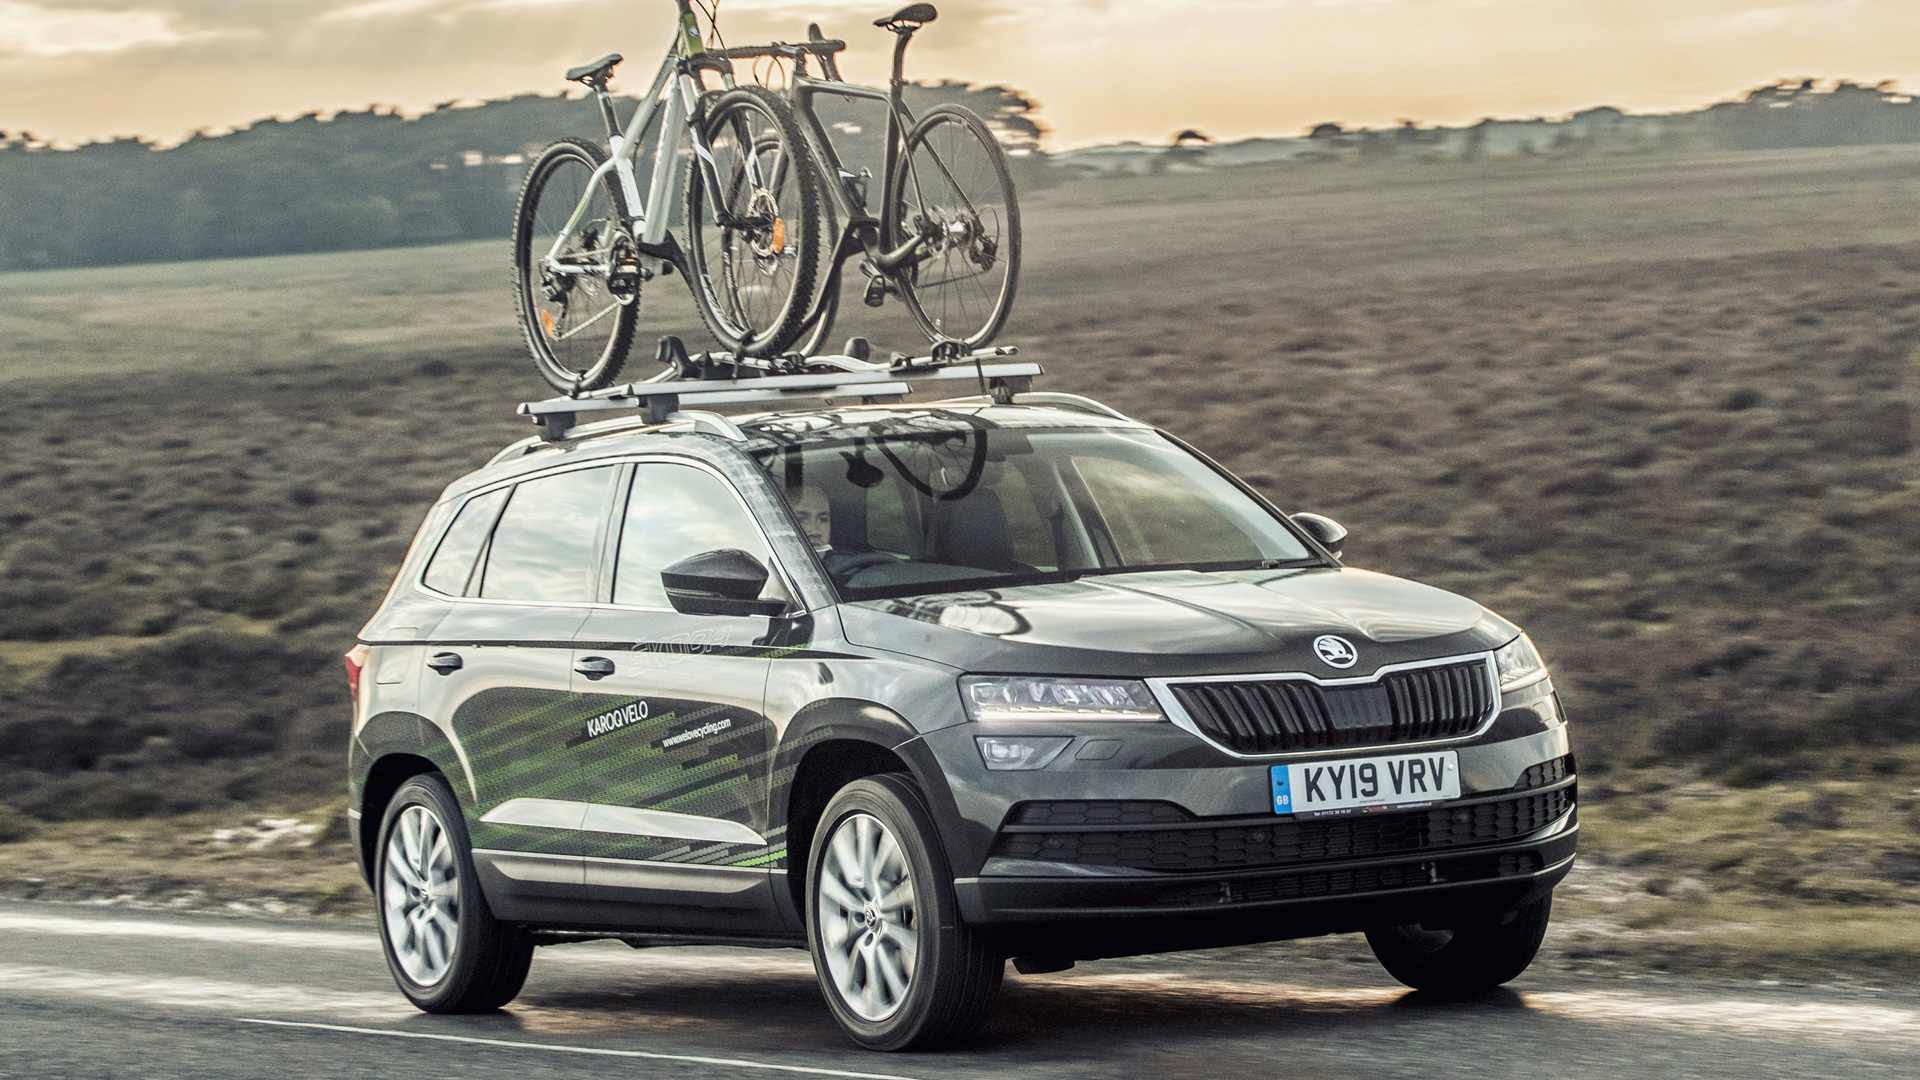 2019 Skoda Karoq Velo Concept Wallpapers And Hd Images Car Pixel